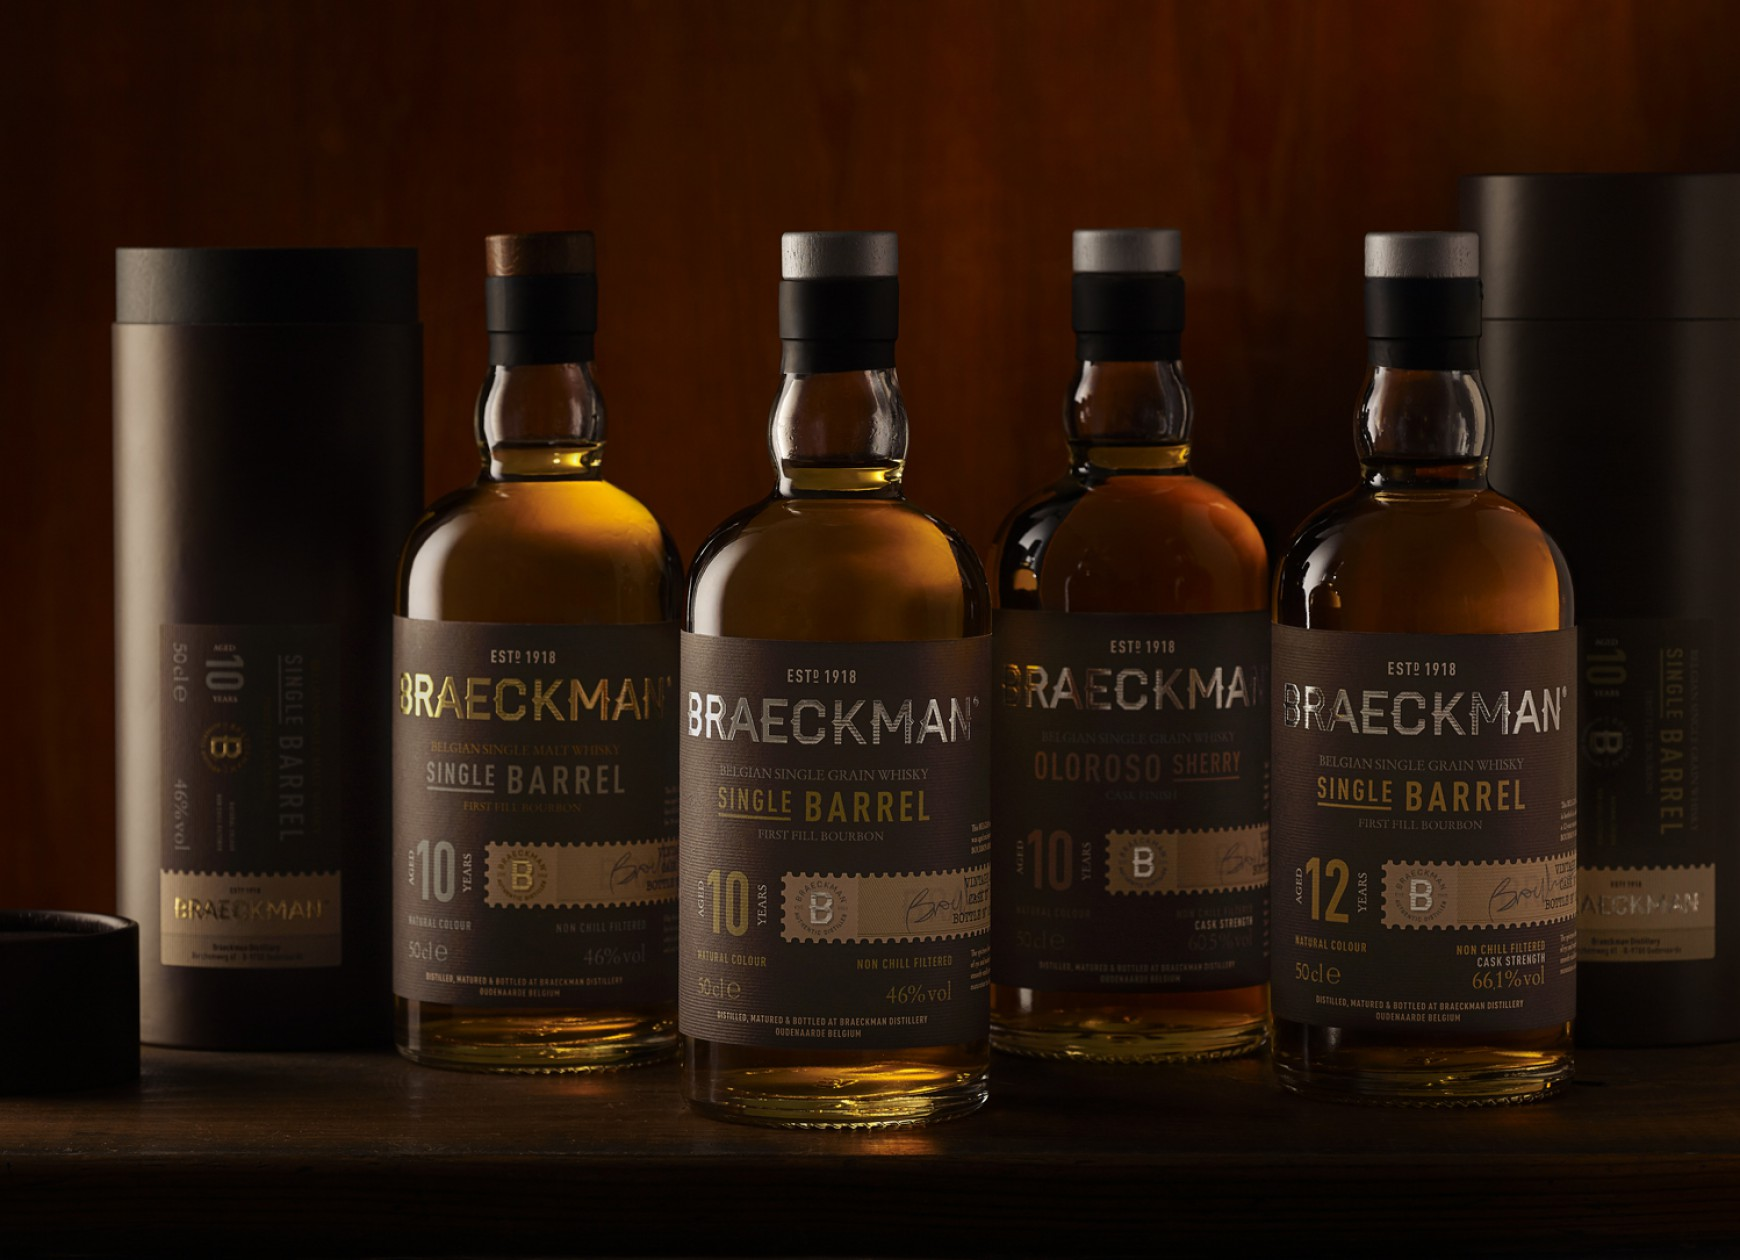 Quatre Mains package design - whiskey, braeckman, quatre mains, packaging